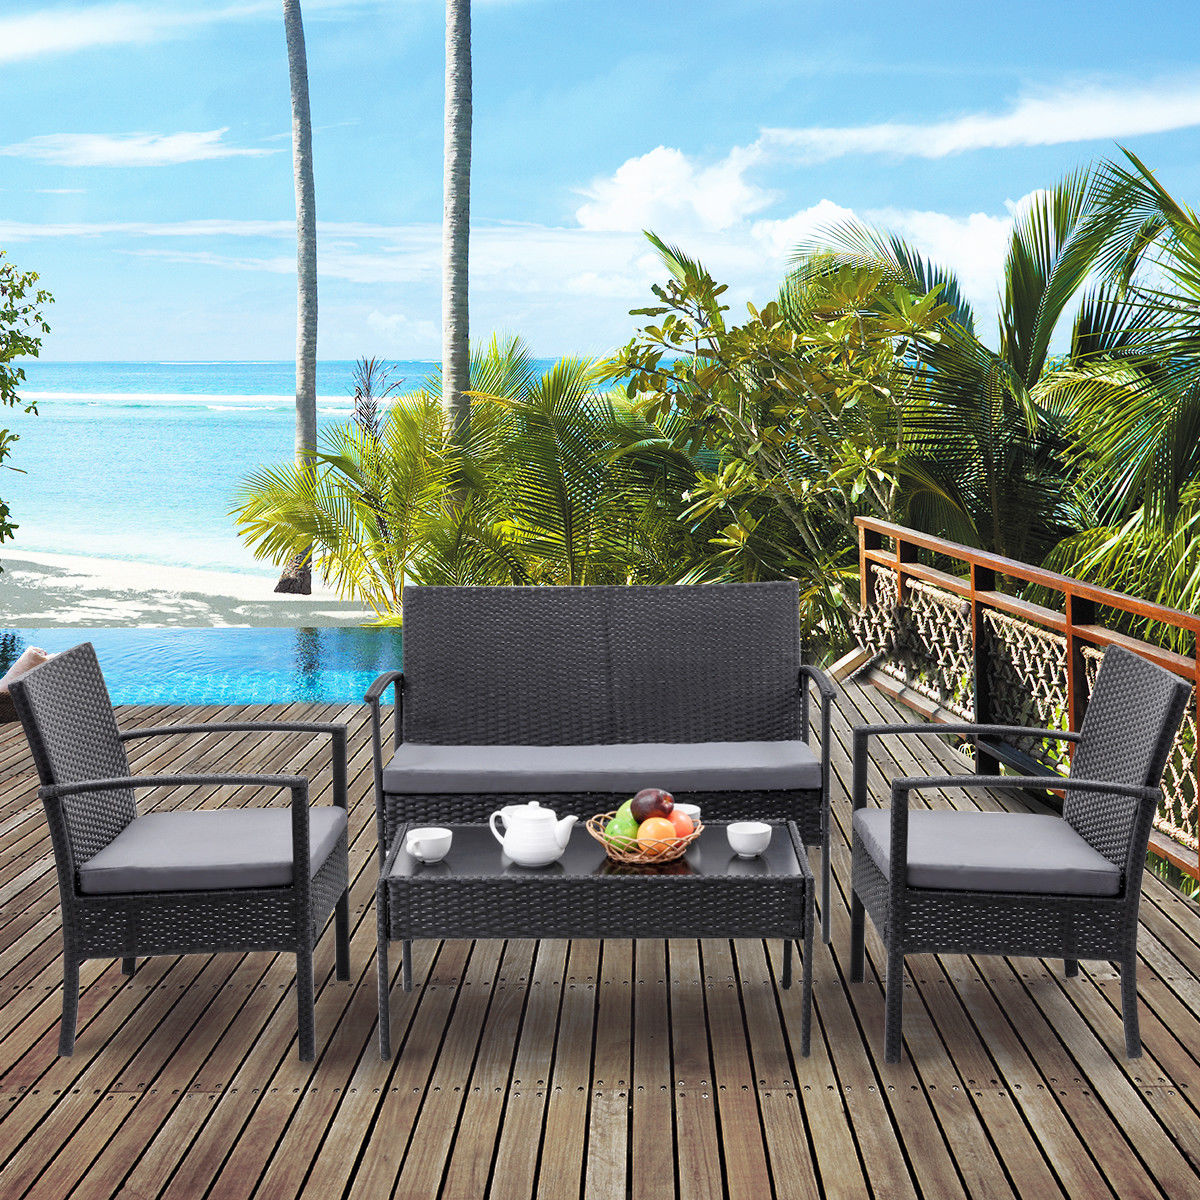 Costway 4-Pieces Outdoor Patio Rattan Wicker Furniture Set